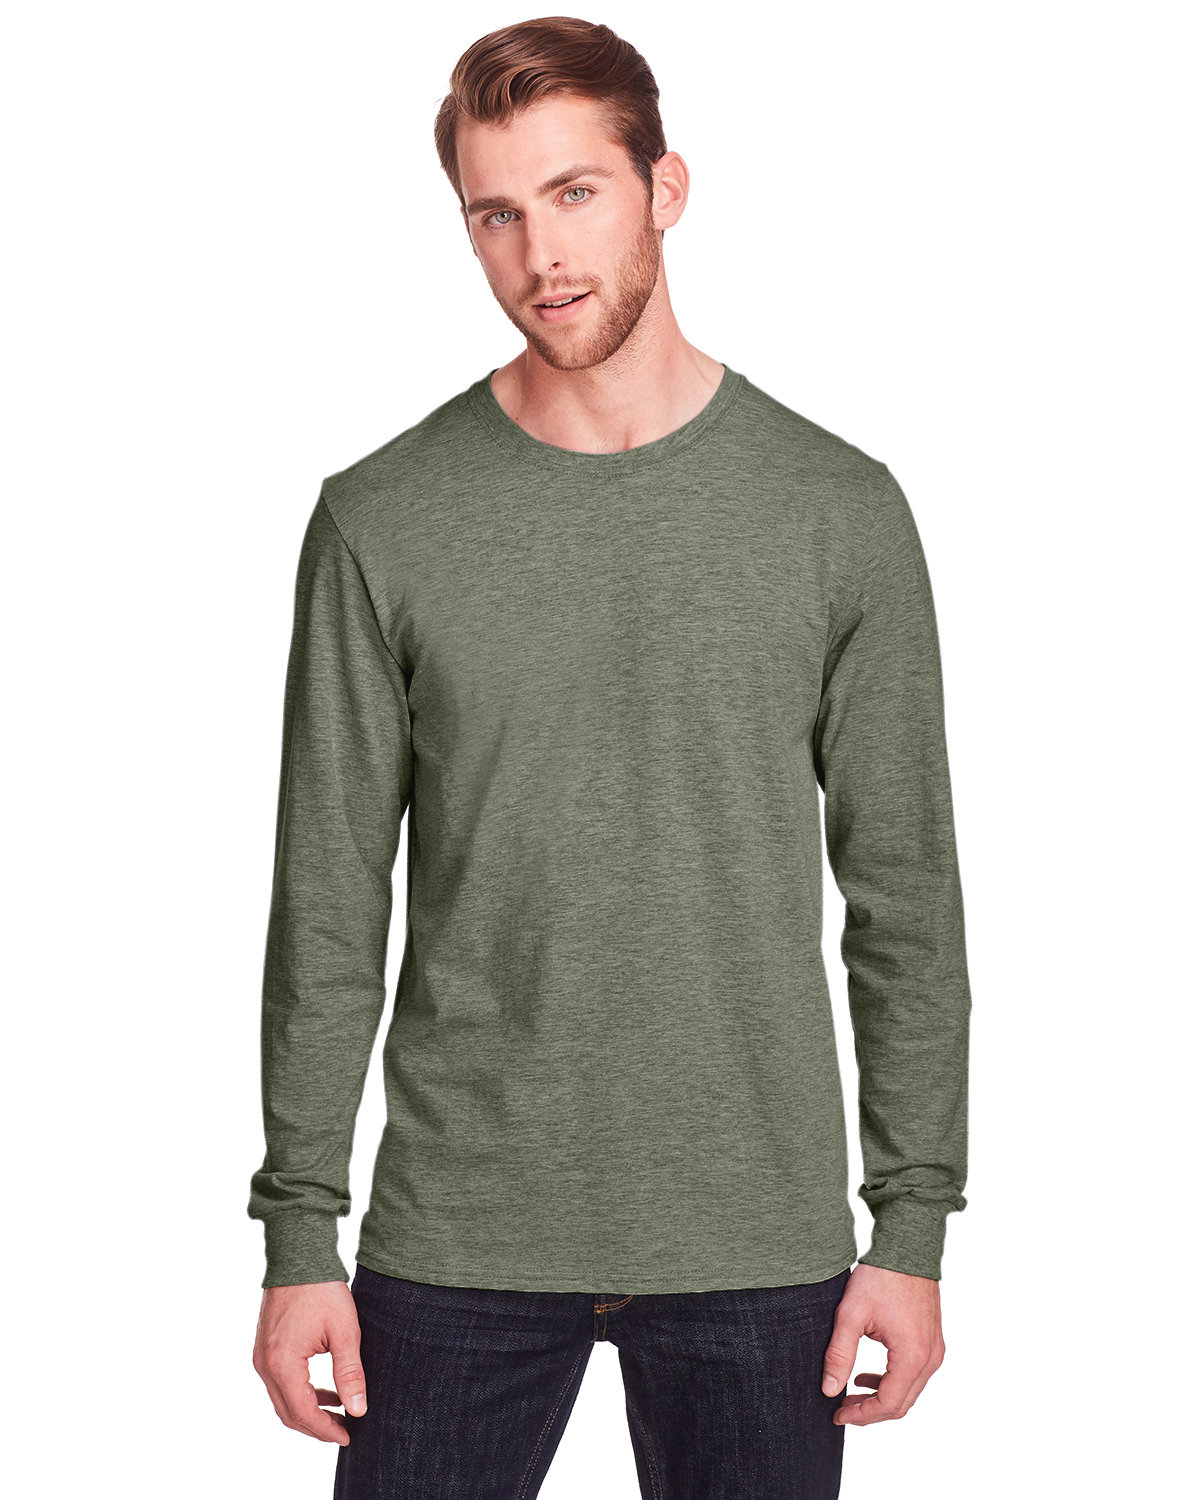 Fruit of the Loom Adult ICONIC™ Long Sleeve T-Shirt MILITARY GRN HTH